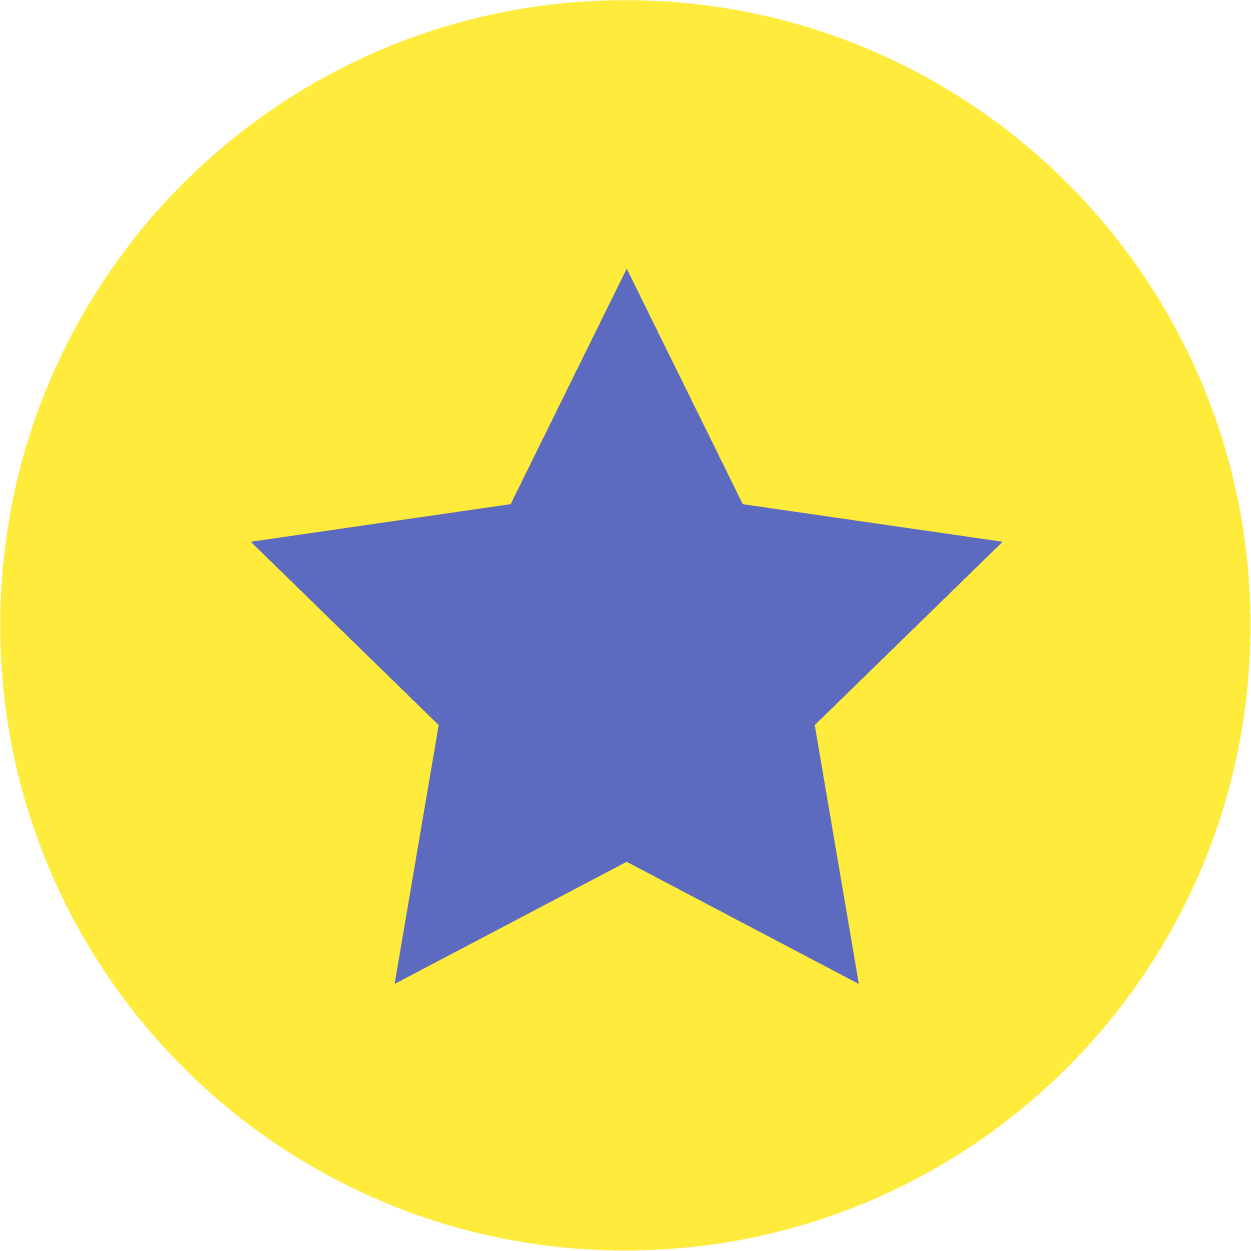 Circular background star icon